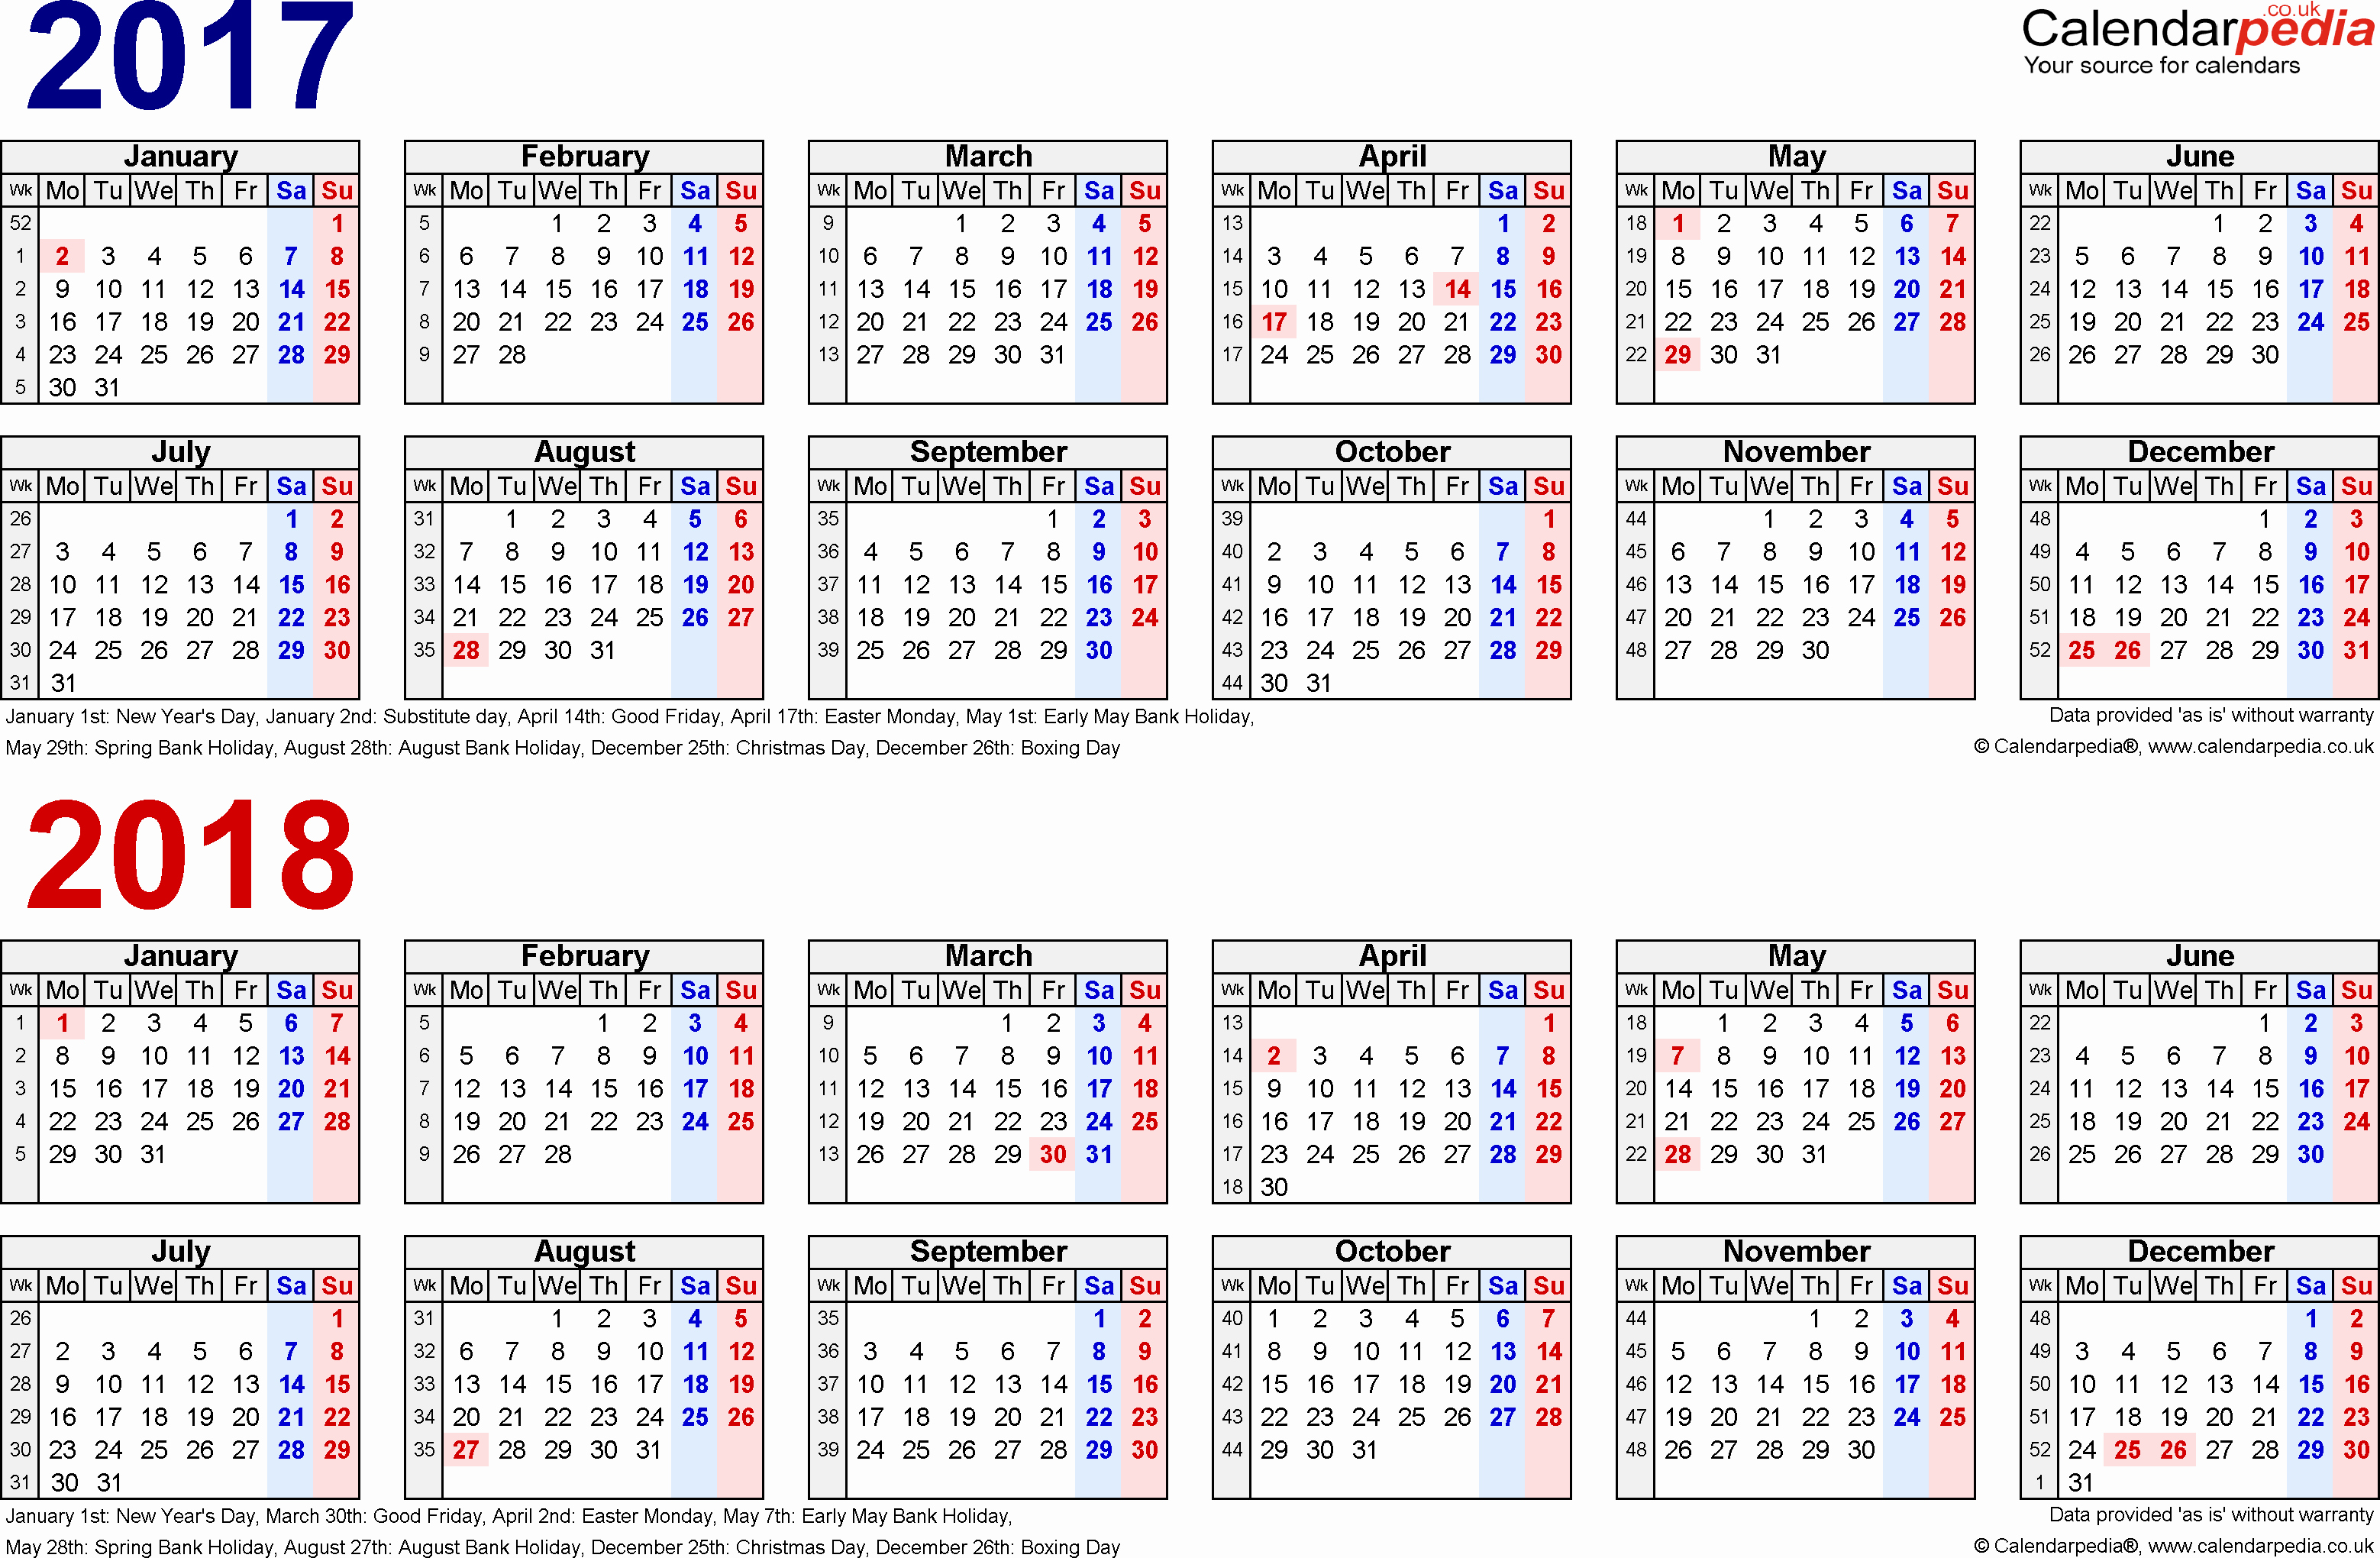 Microsoft Word 2018 Calendar Templates Lovely 2018 Calendar Word